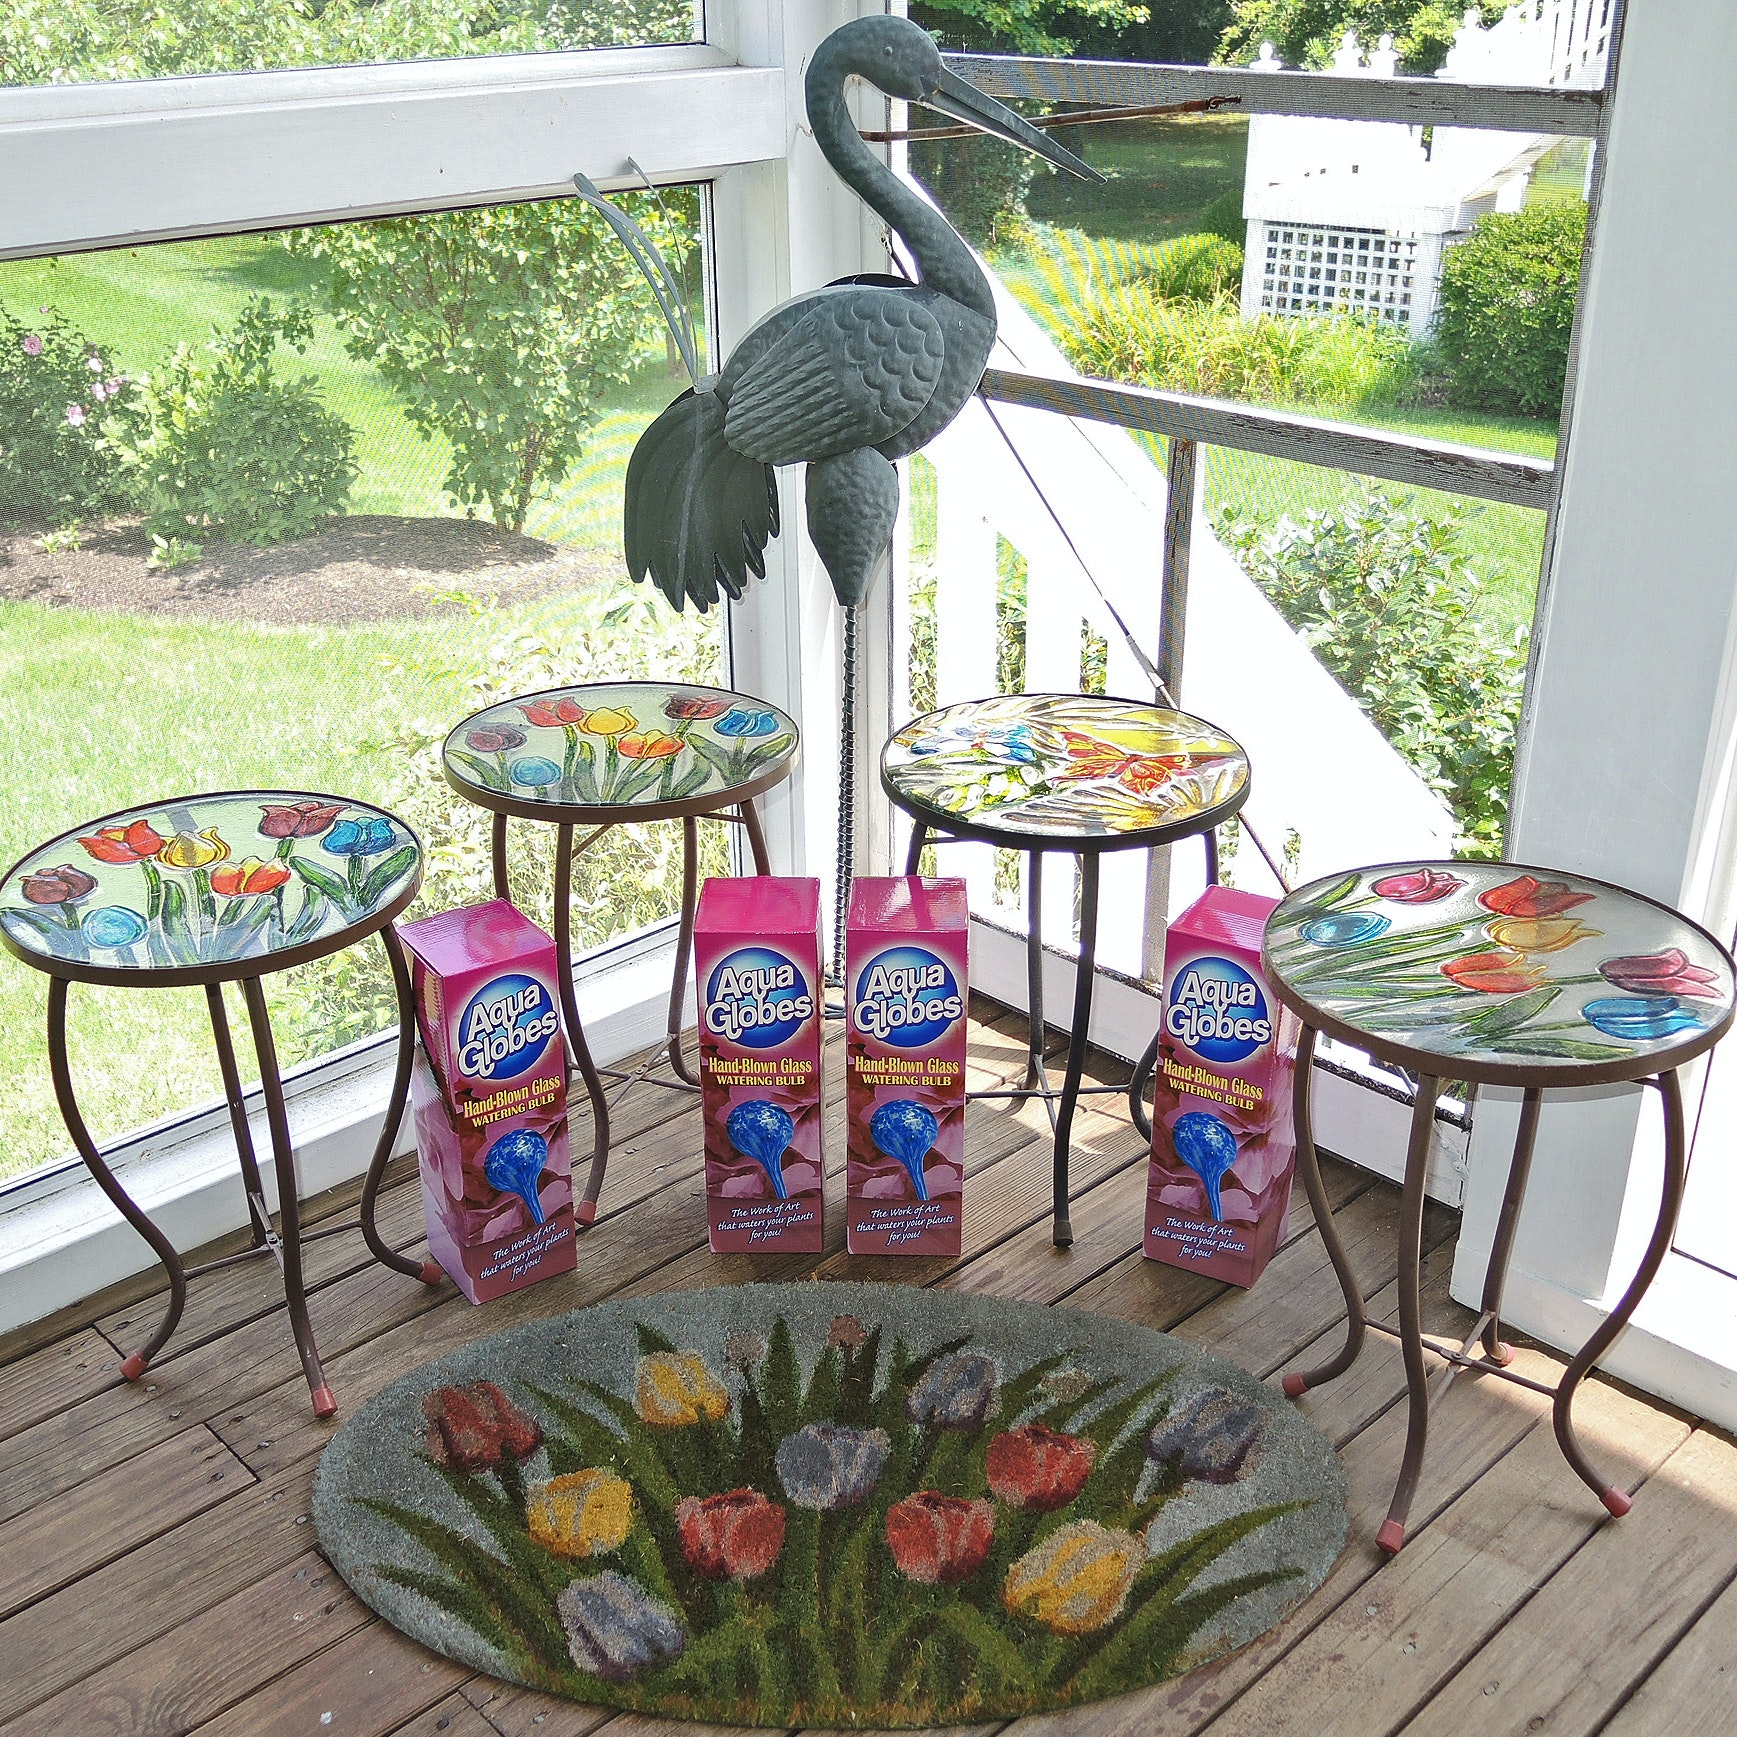 Colored Glass Patio Tables, Crane Lawn Ornament, Rug and Blown Glass Globes